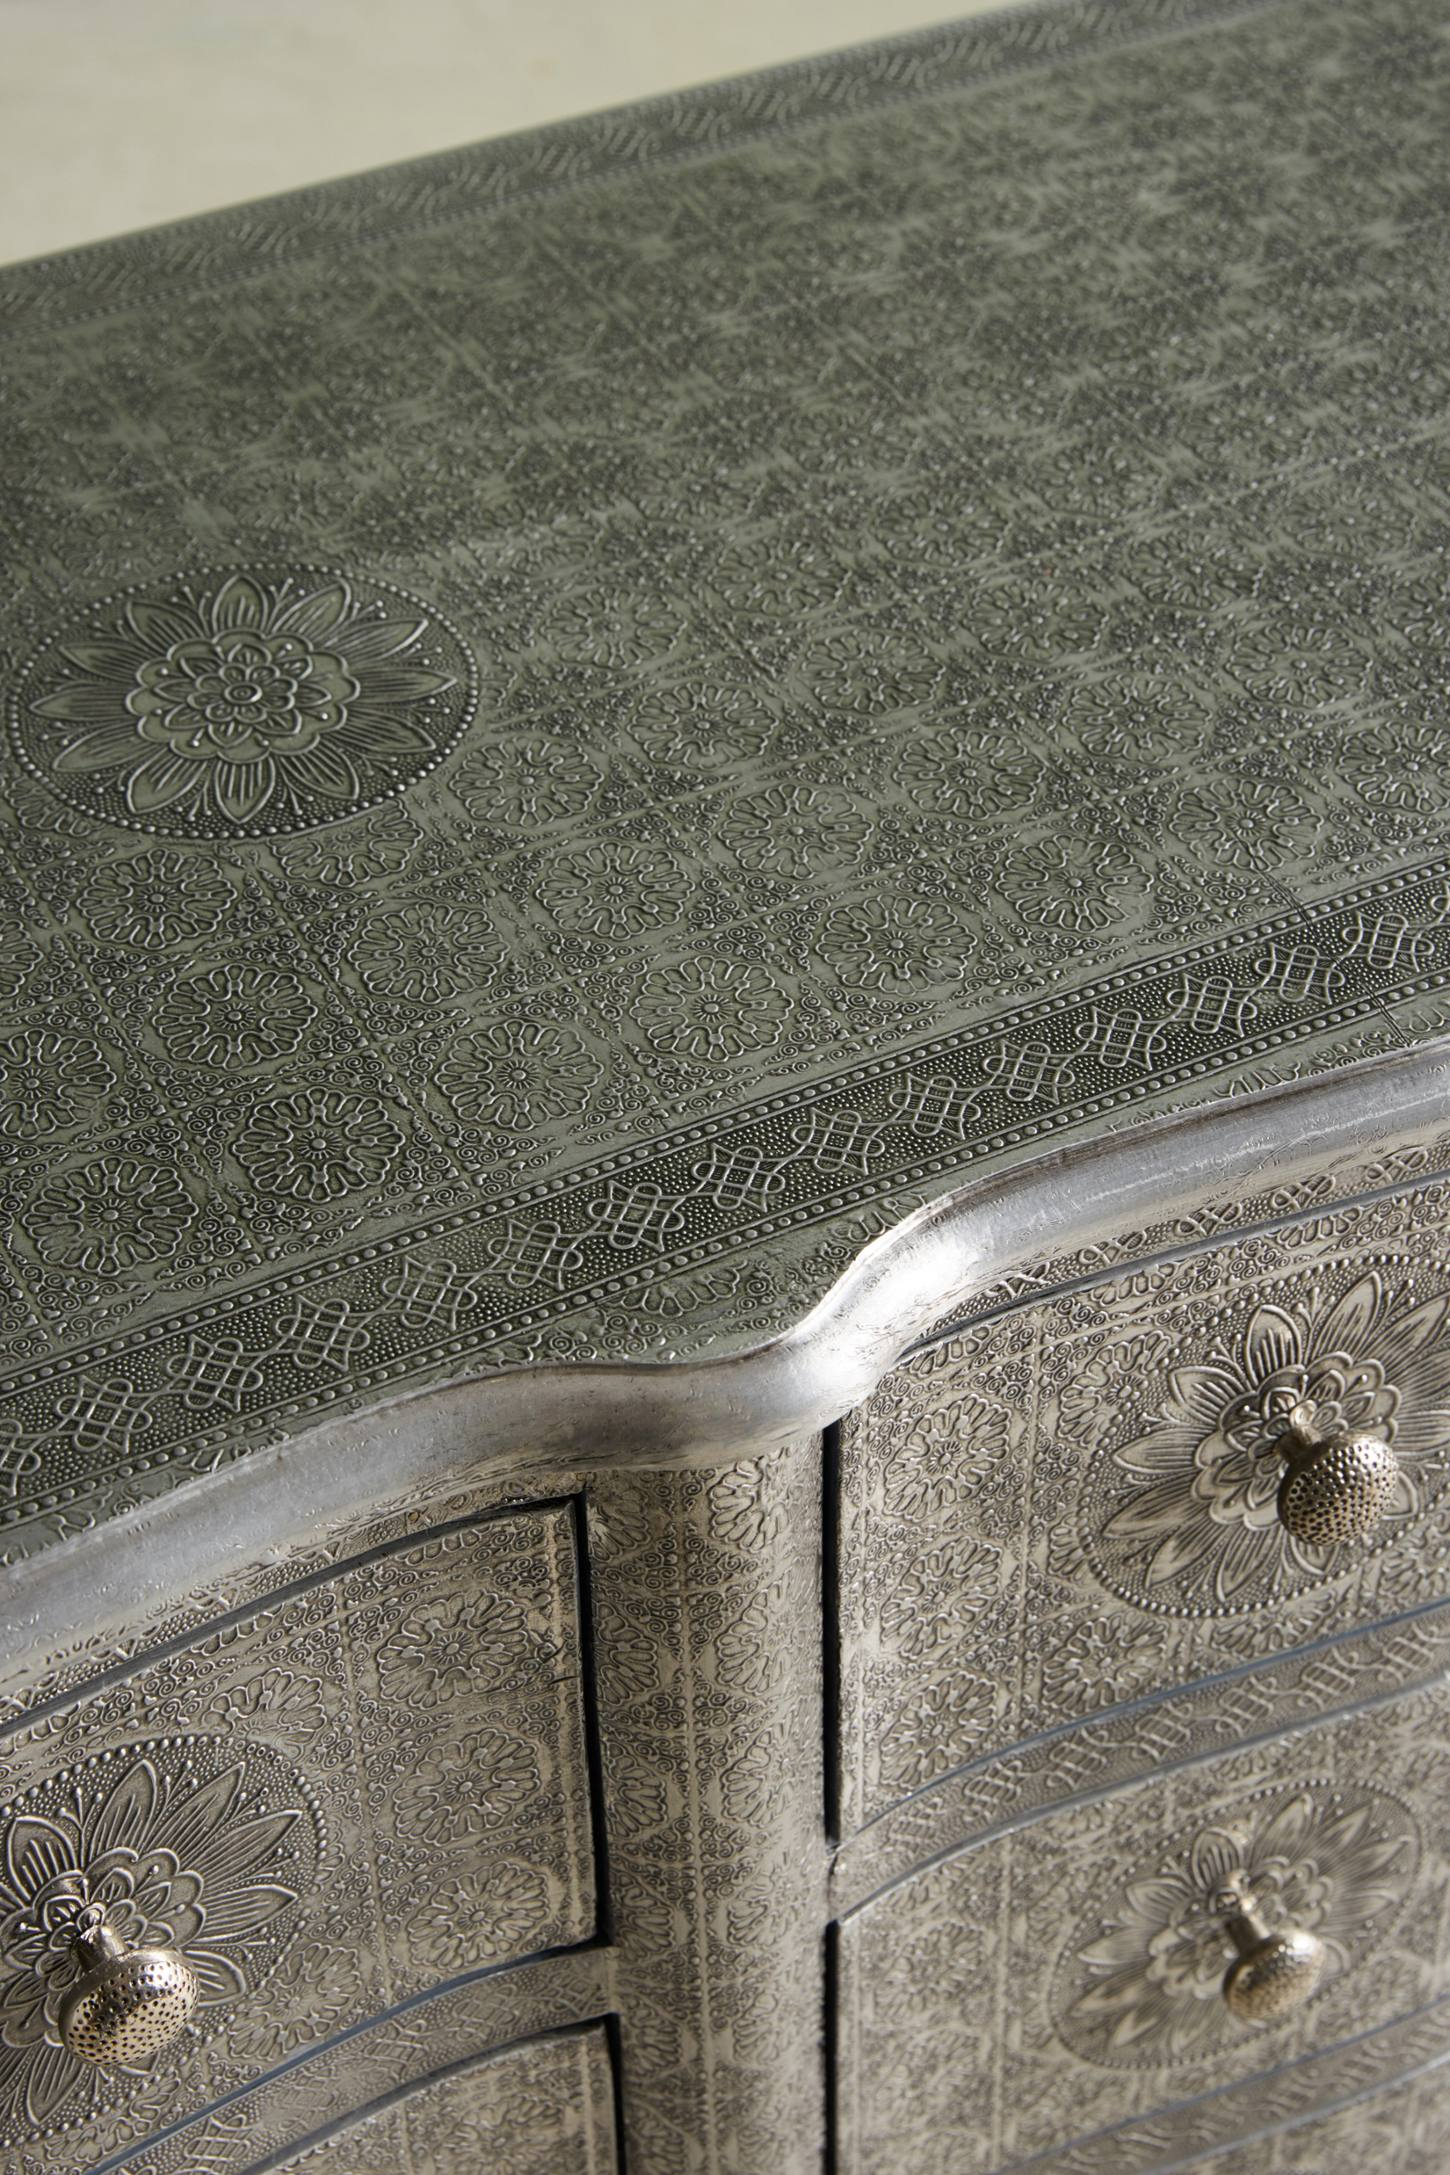 Slide View: 4: Hand-Embossed Six-Drawer Dresser